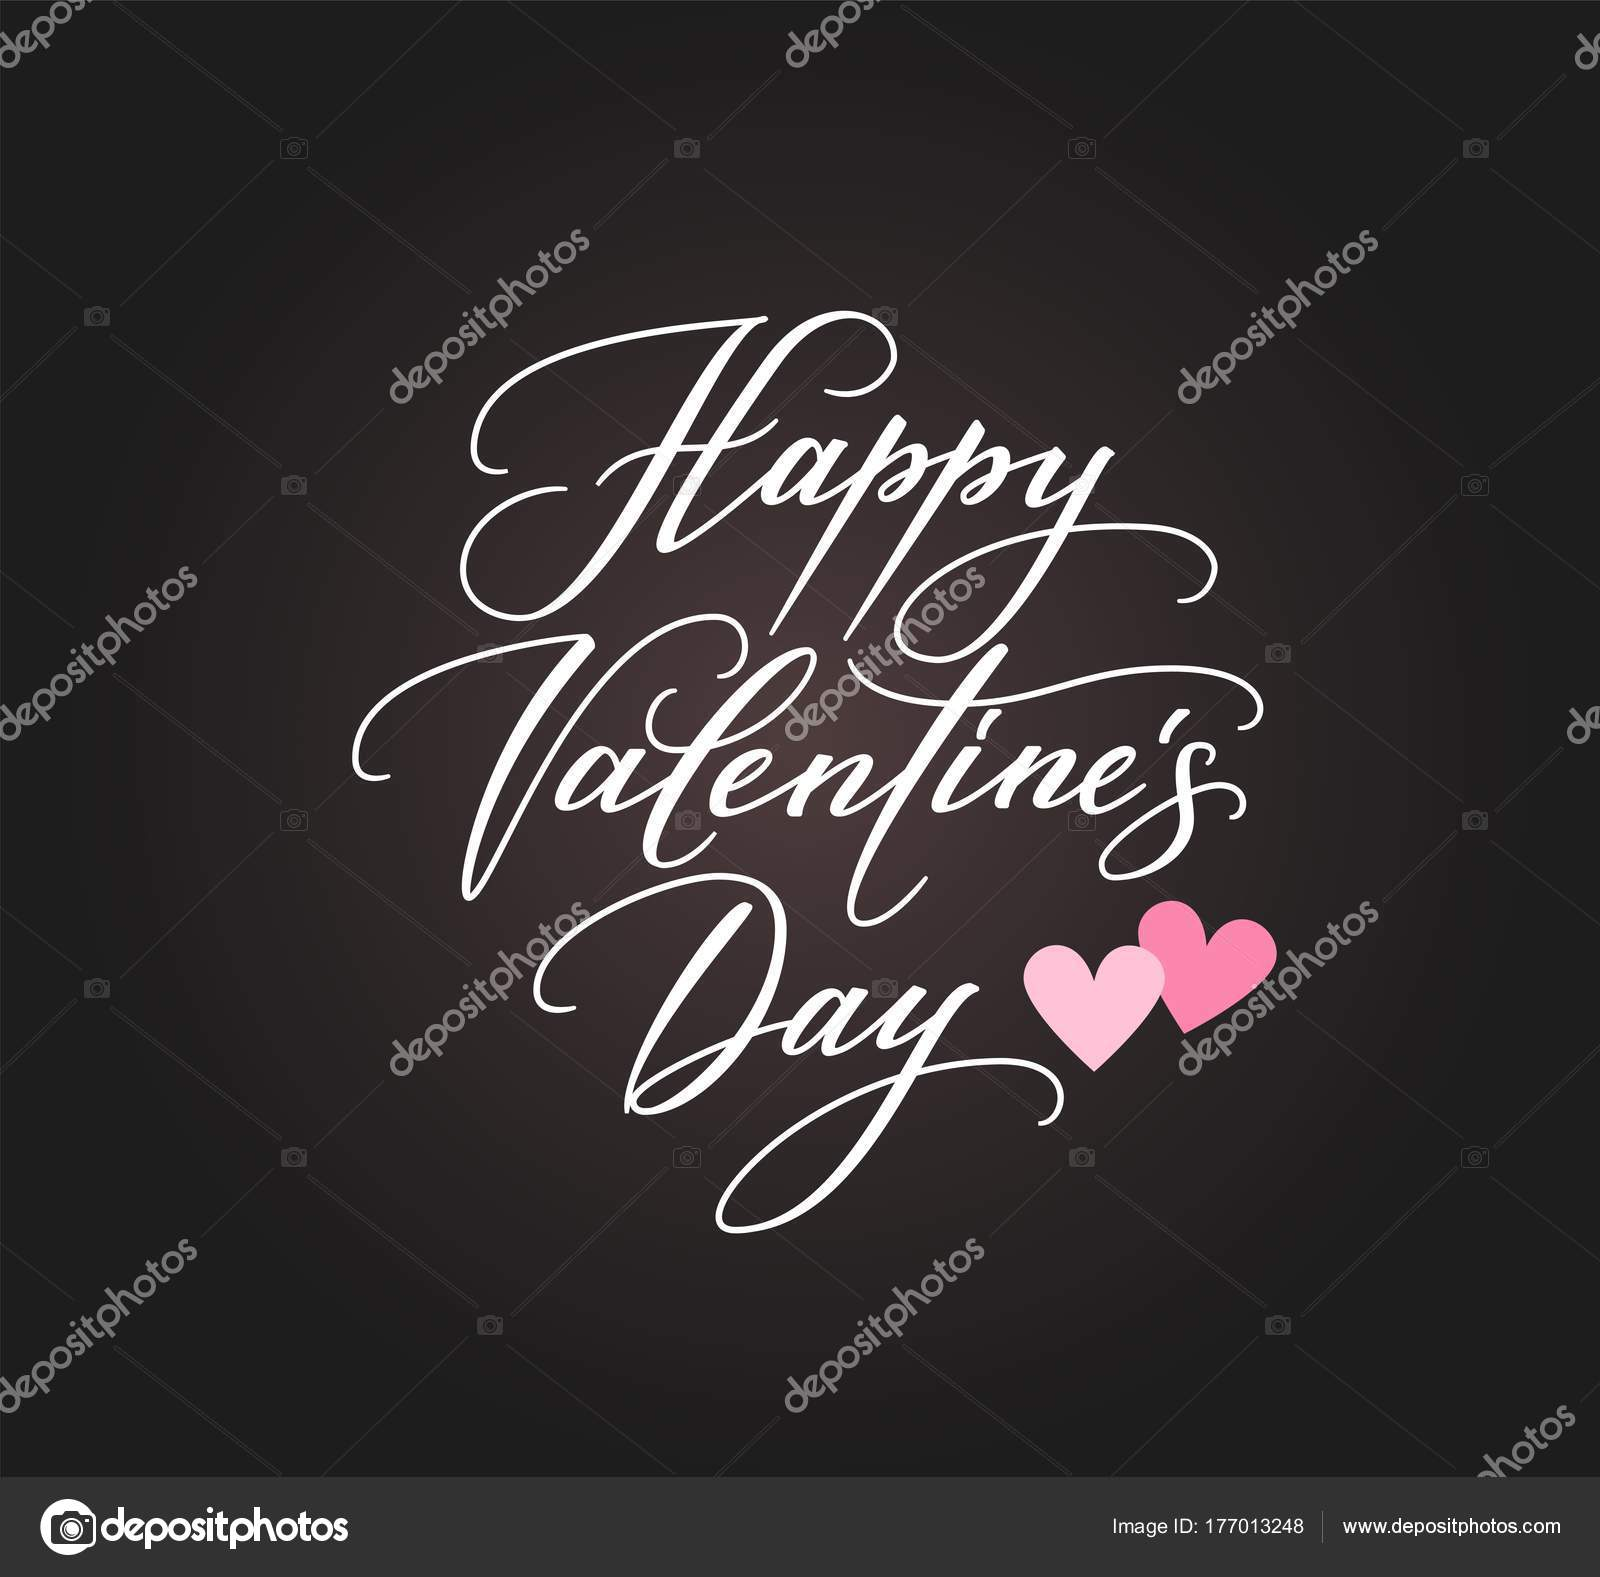 Background with happy valentines day text and hearts symbols background with happy valentines day text and hearts symbols stock vector 177013248 biocorpaavc